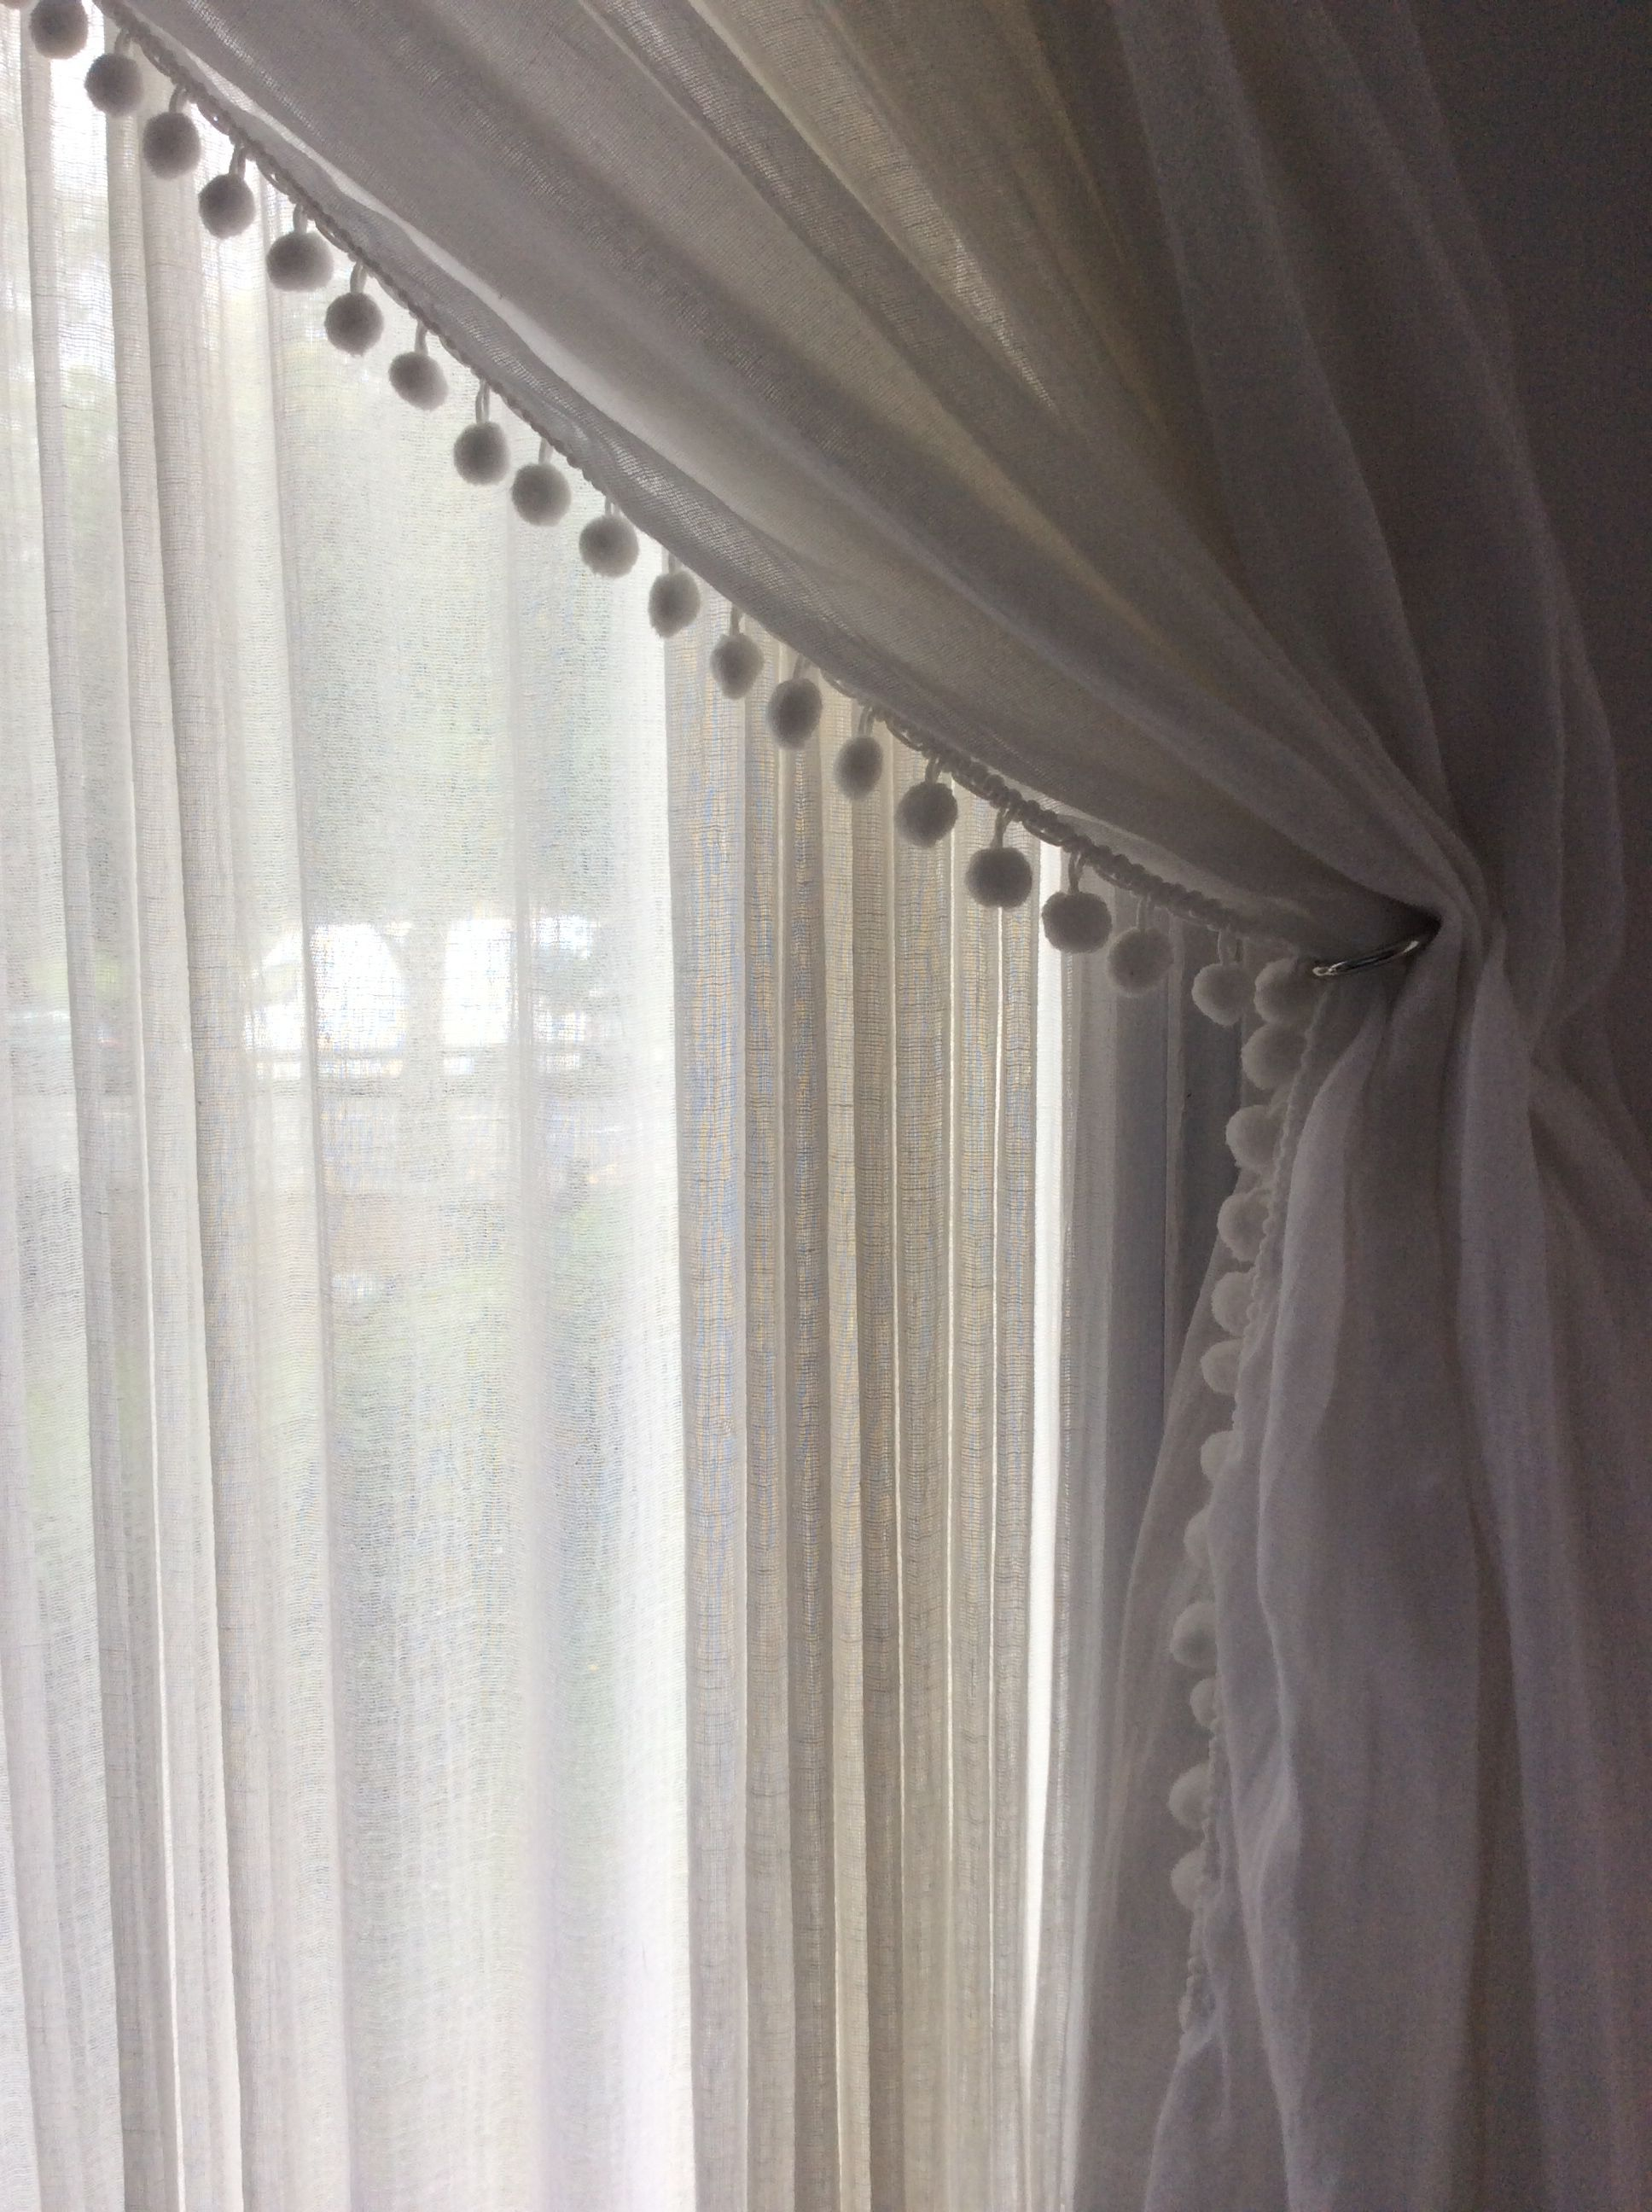 Muslin Curtain With Pom Pom Edge Curtain Decor Curtains Living